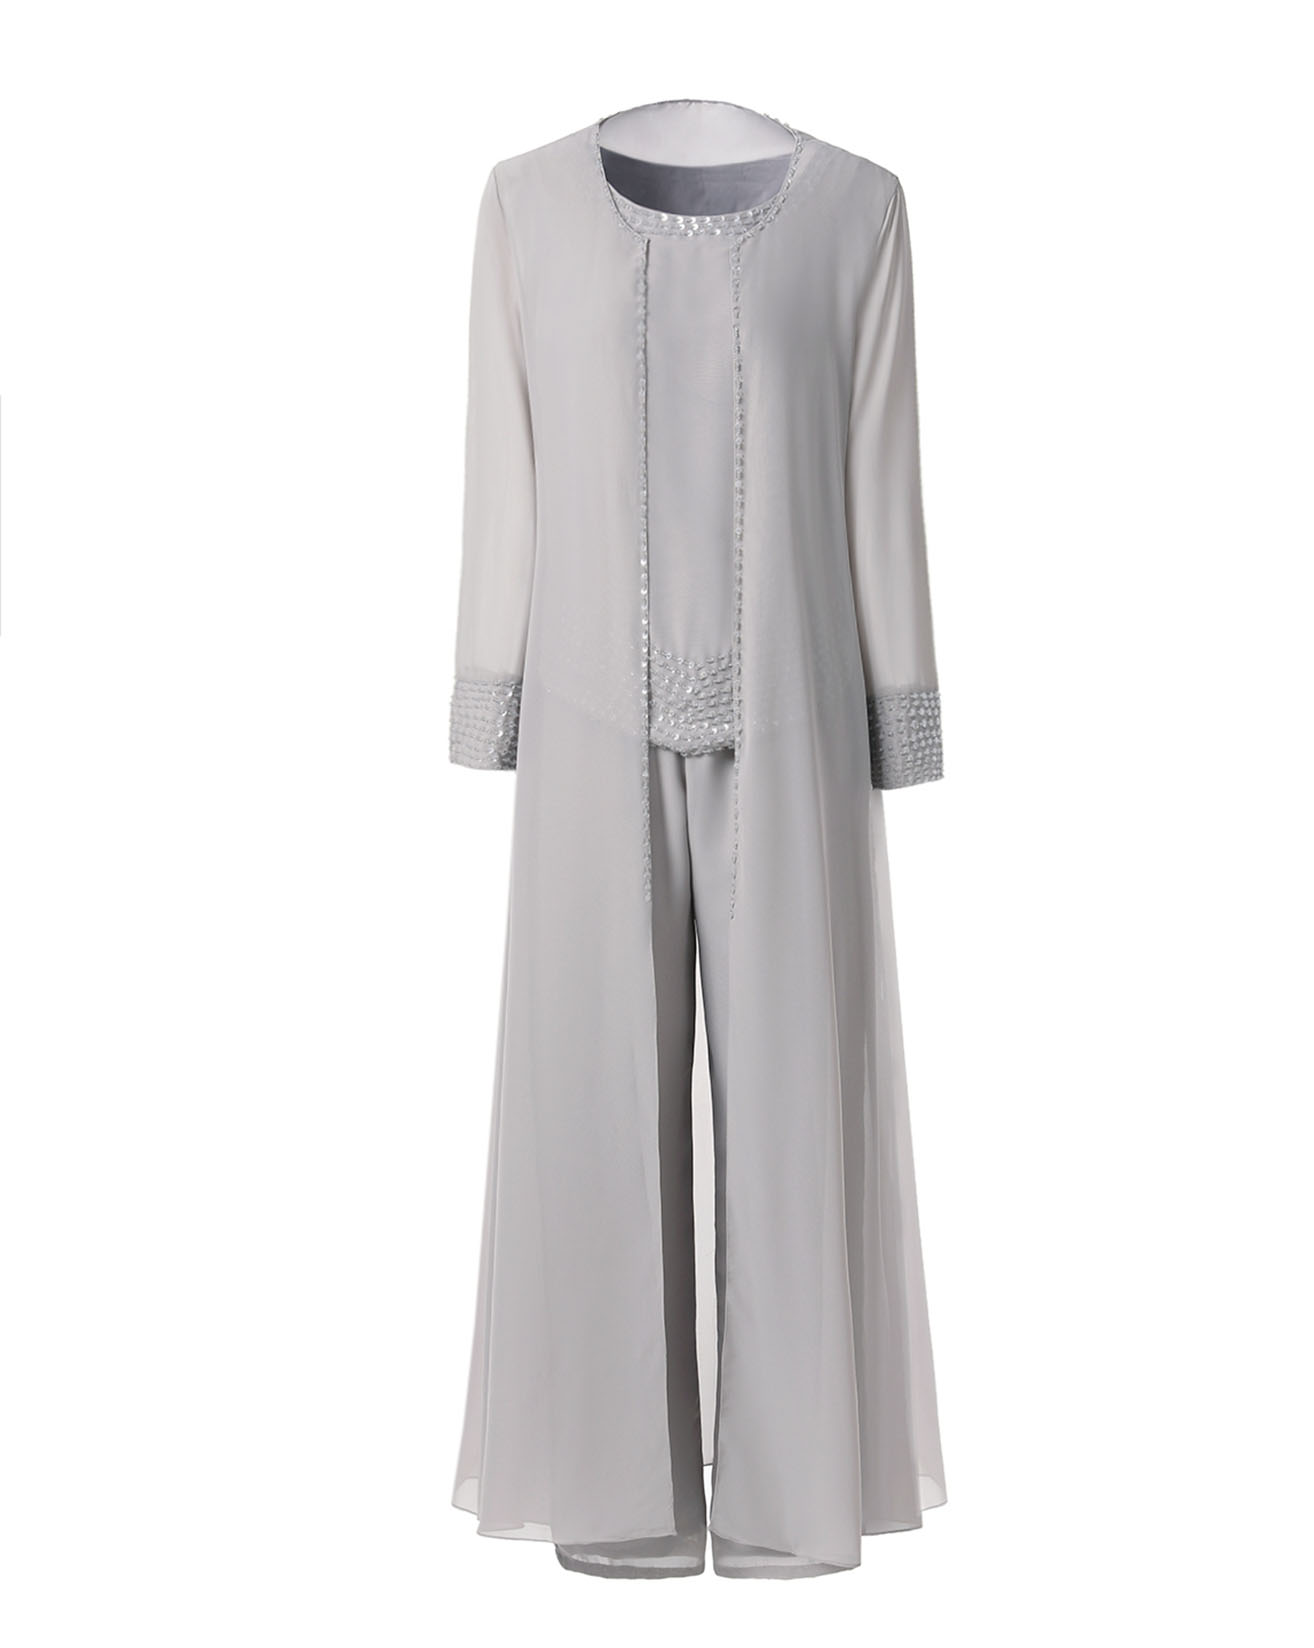 Fashion 3 Pieces Beading Mother Of The Bride Dress Pant Set Suit With Ankle Length Jacket Outfit For Wedding Muslim Dress